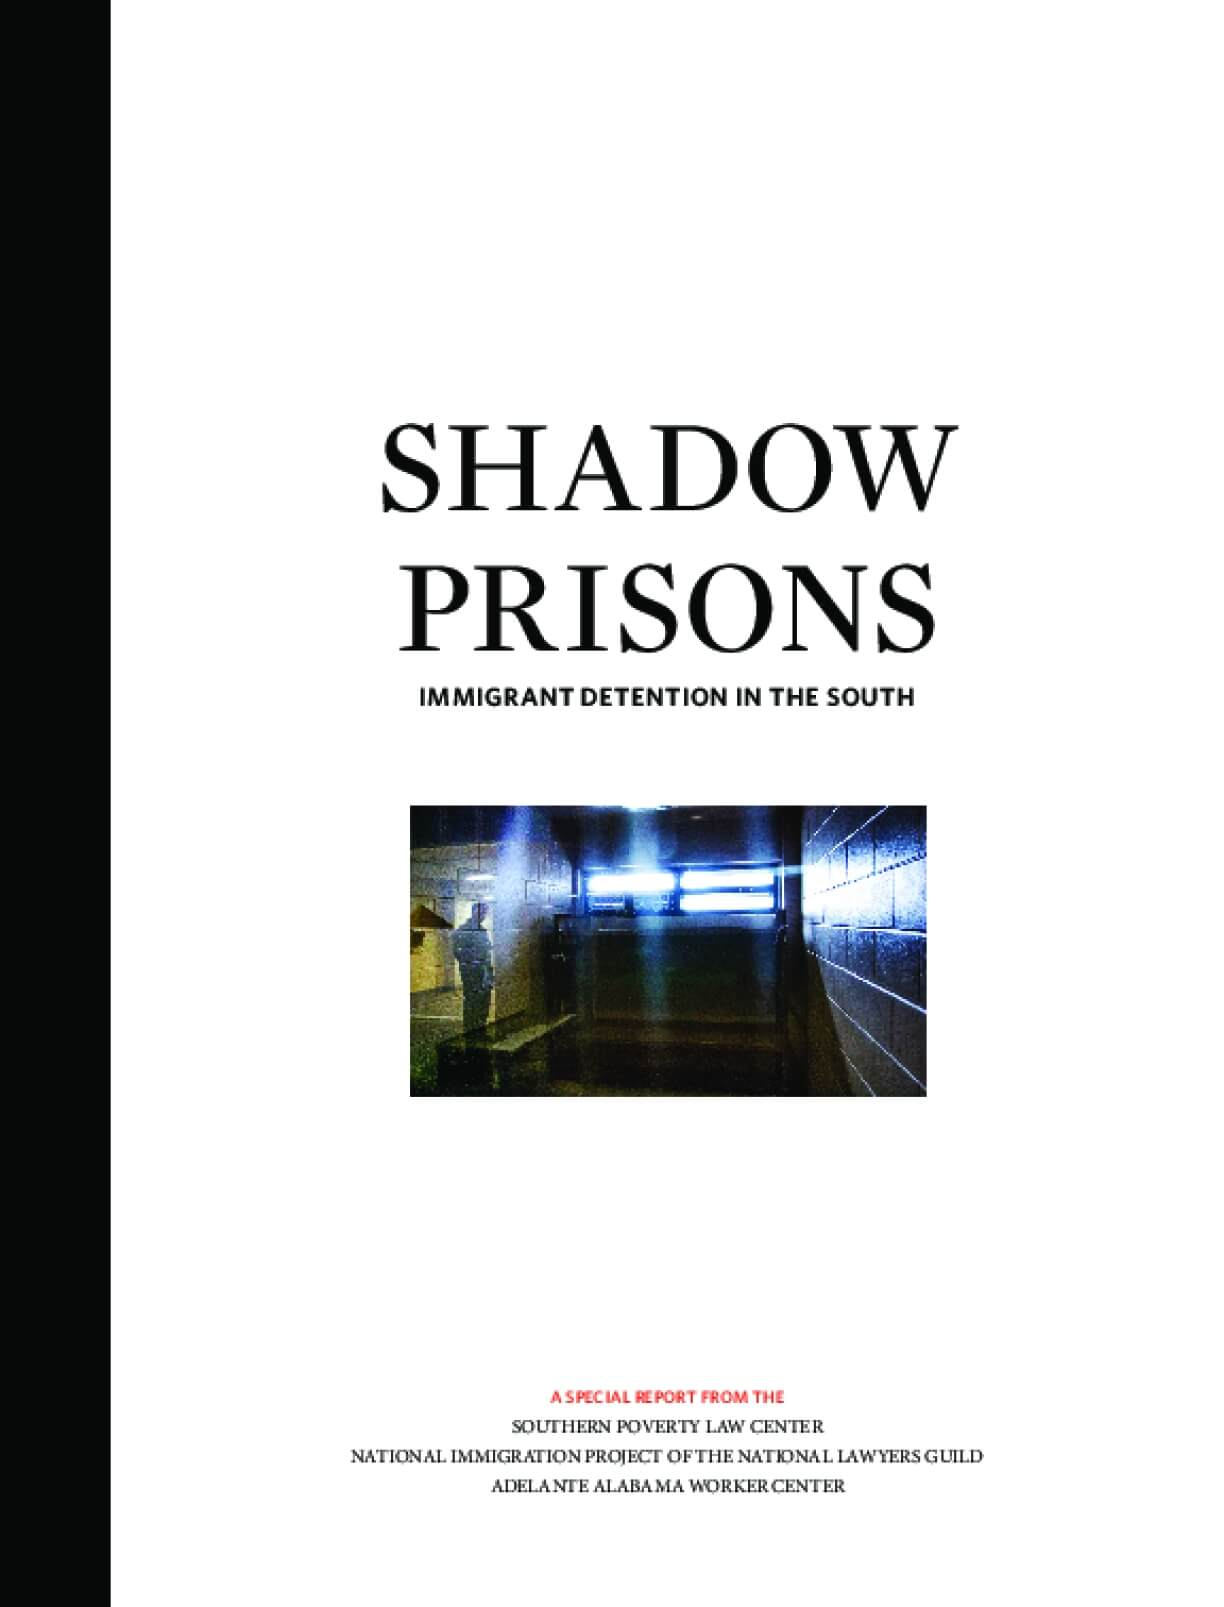 Shadow Prisons: Immigrant Detention in the South